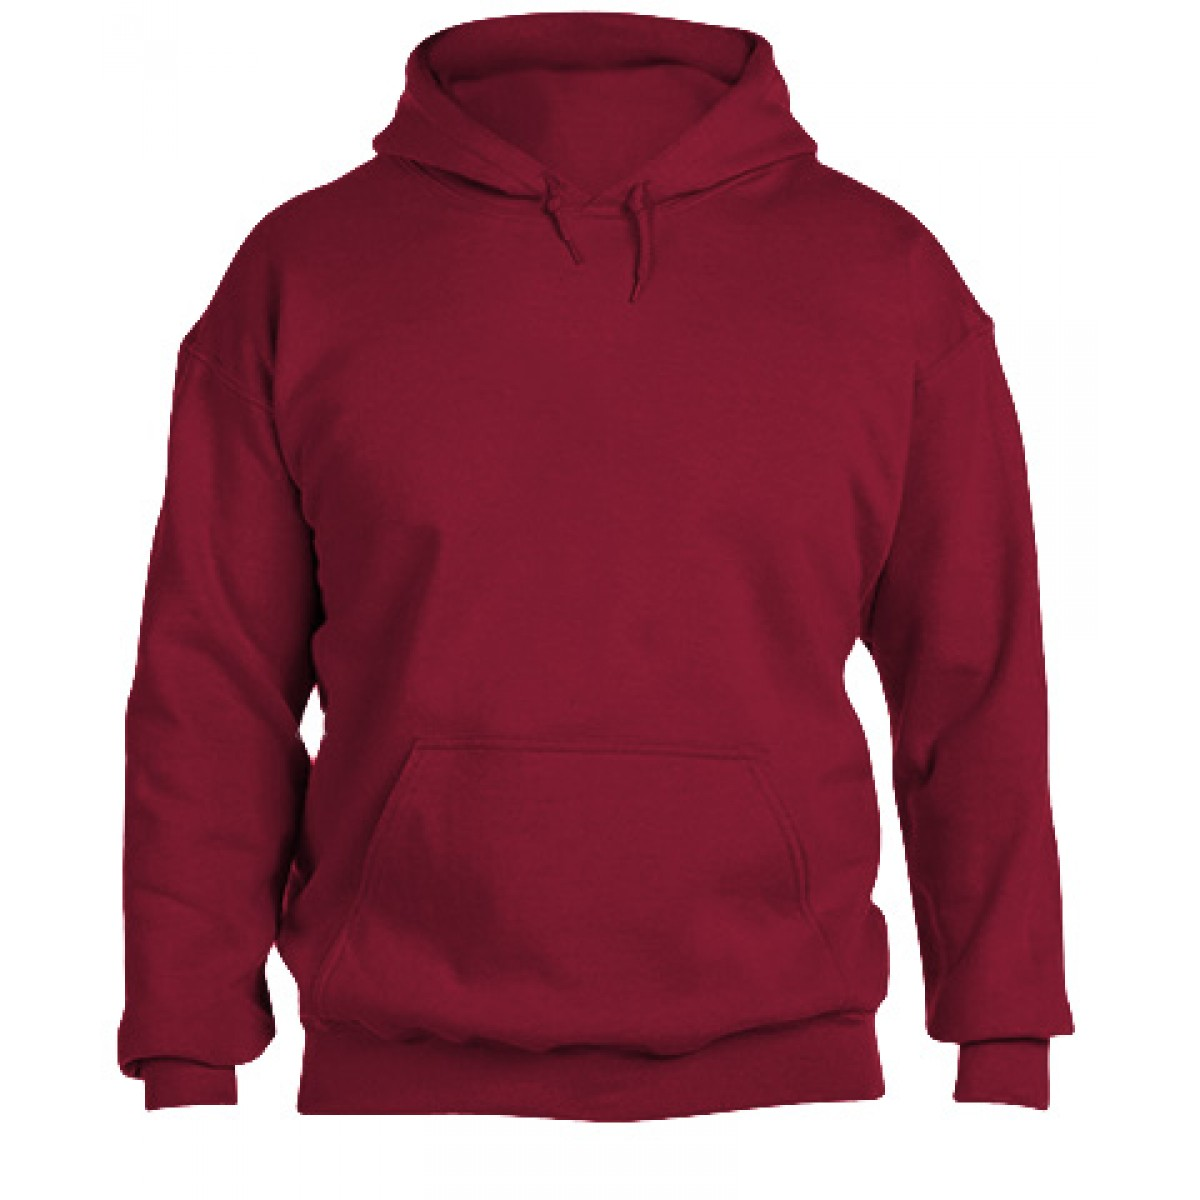 Hooded Sweatshirt 50/50 Heavy Blend -Cardinal Red-L